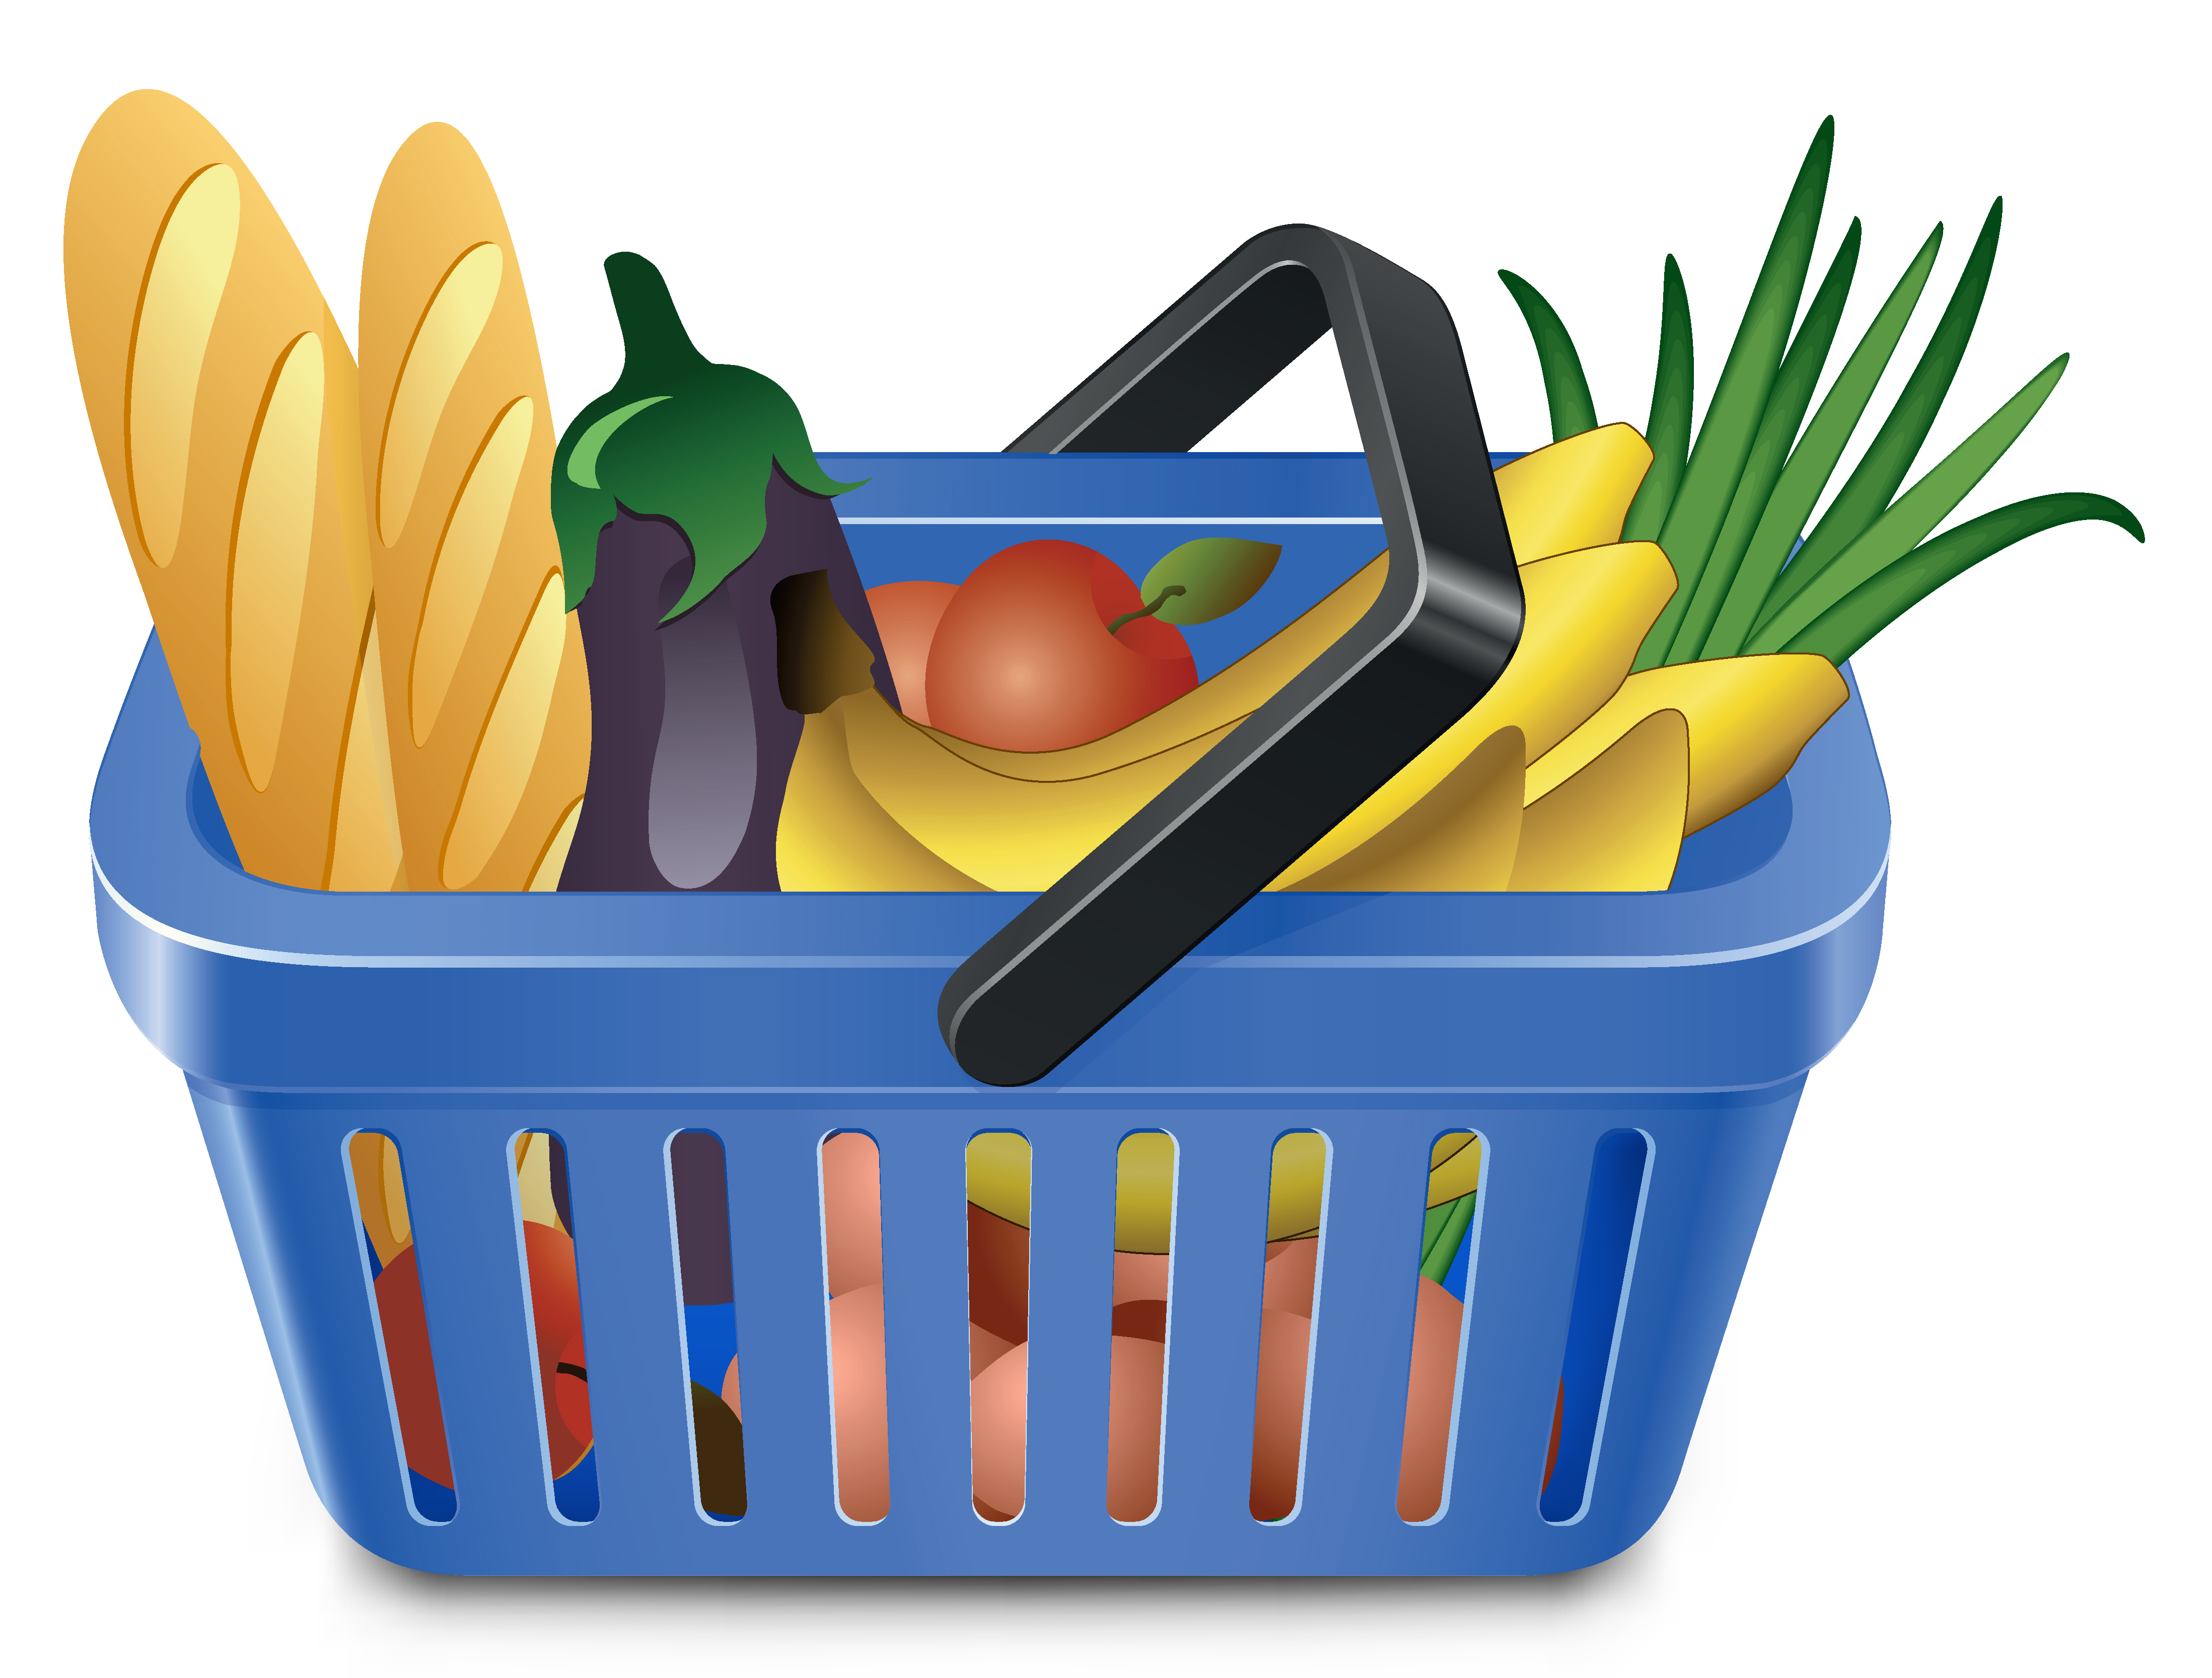 Vector Clipart Shopping Basket : Basket of vegetables clipart panda free